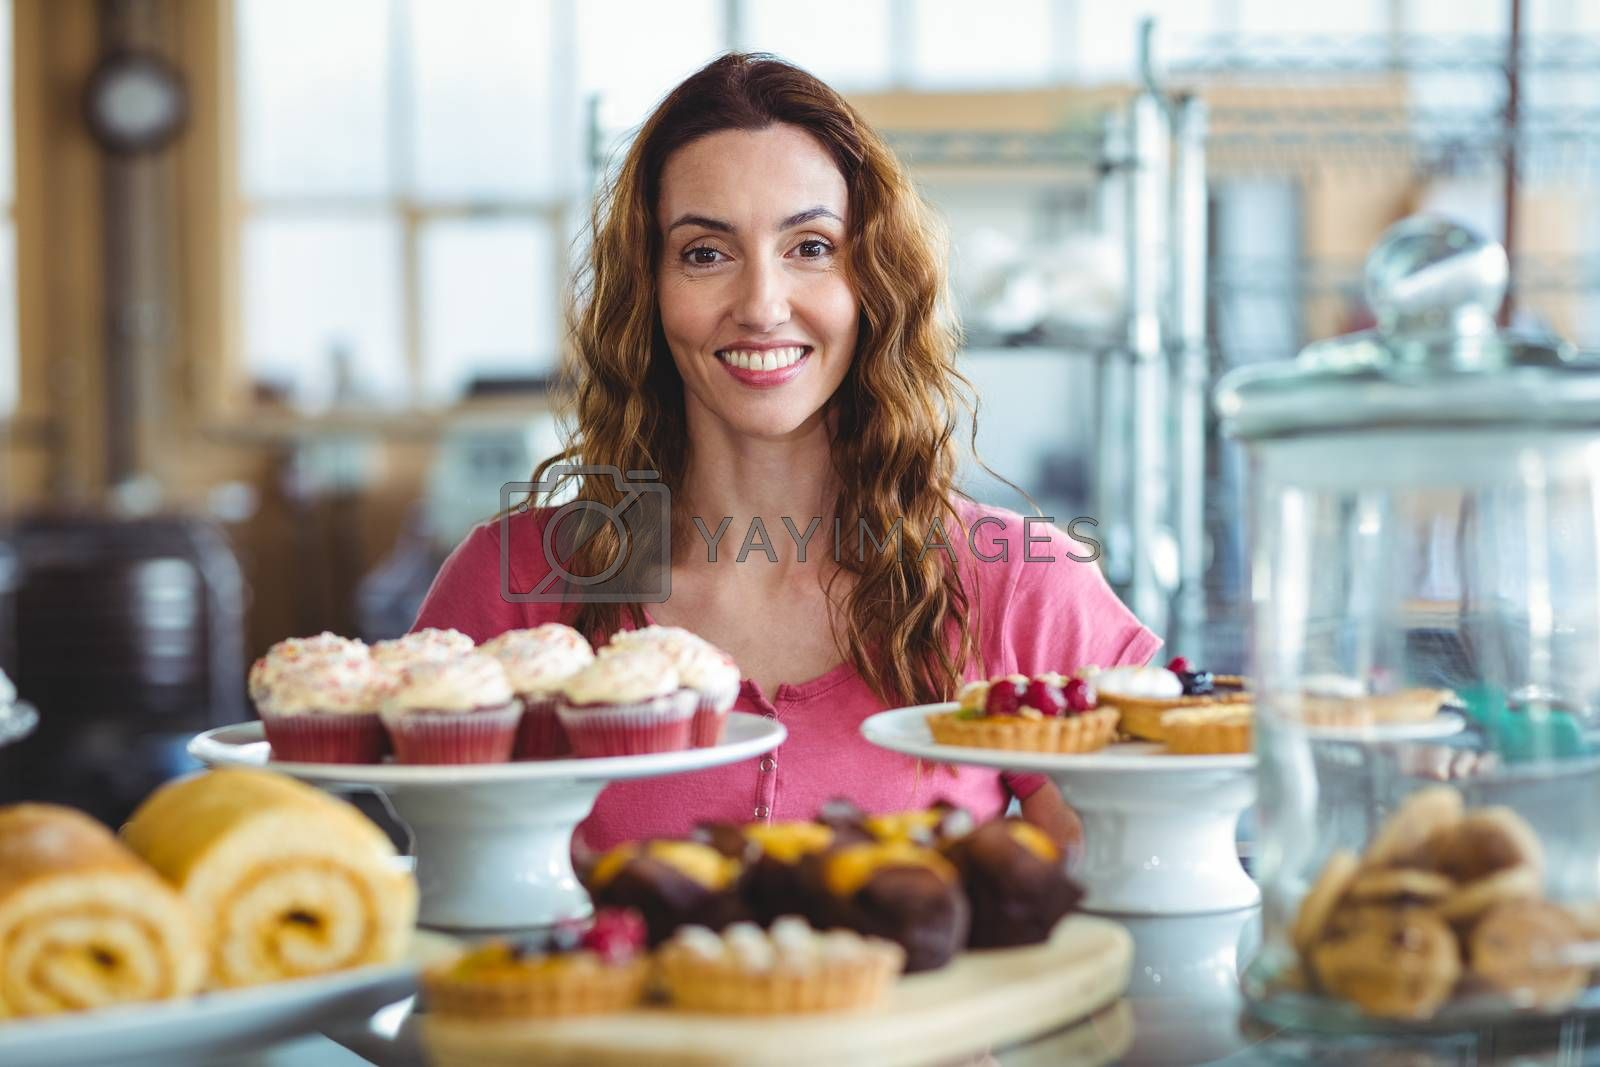 Royalty free image of Pretty brunette smiling at camera behind counter by Wavebreakmedia